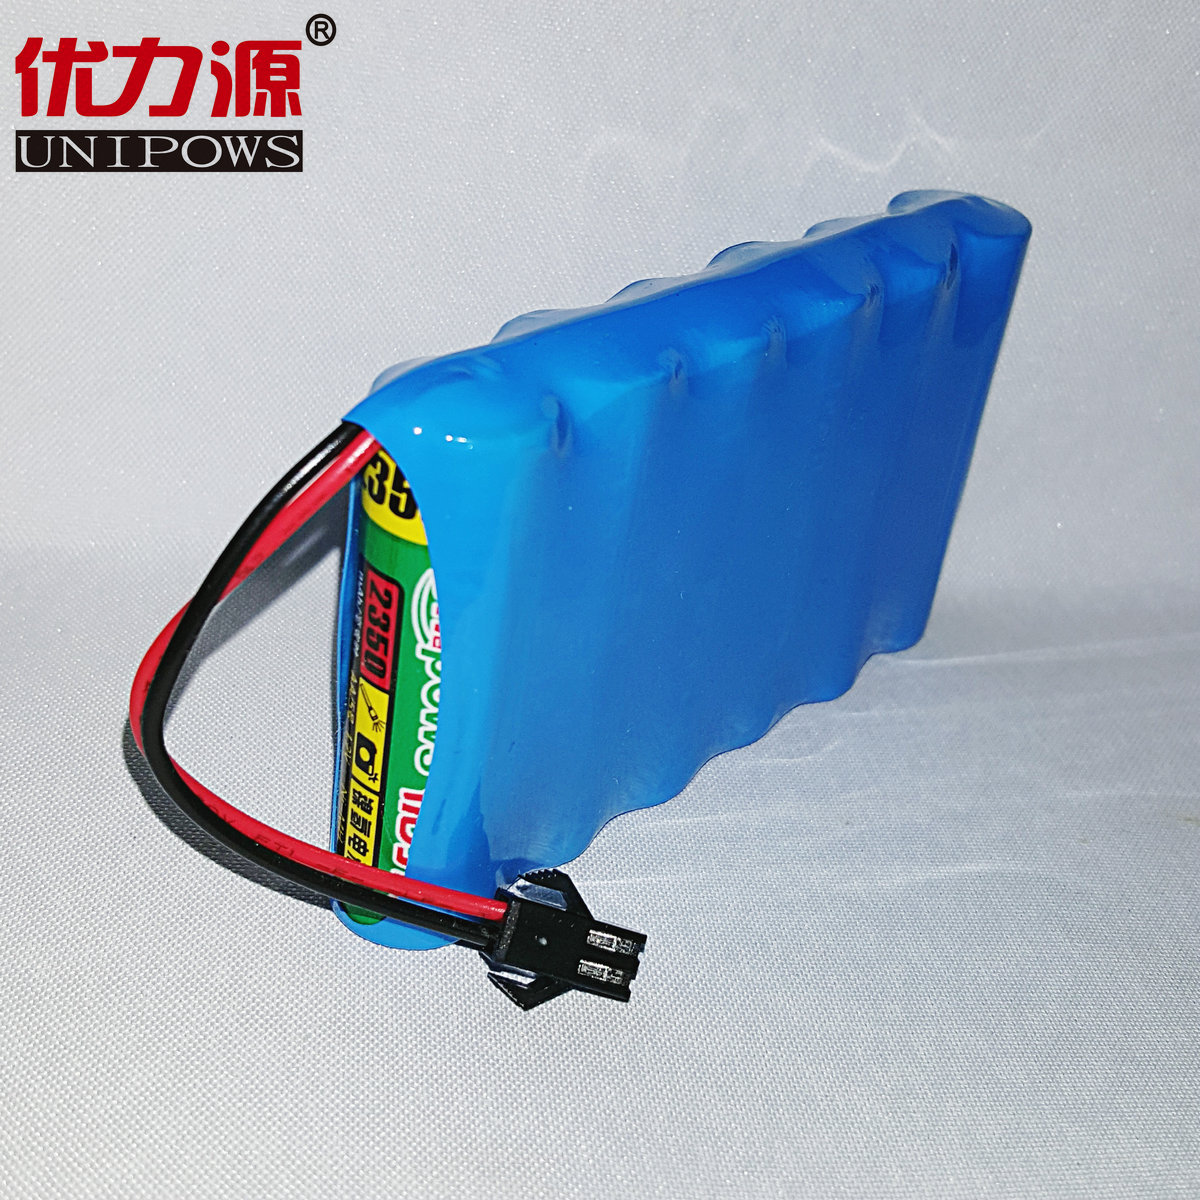 Excellent source of 2350 v battery toy car battery 5 mah single row combination with sm plug